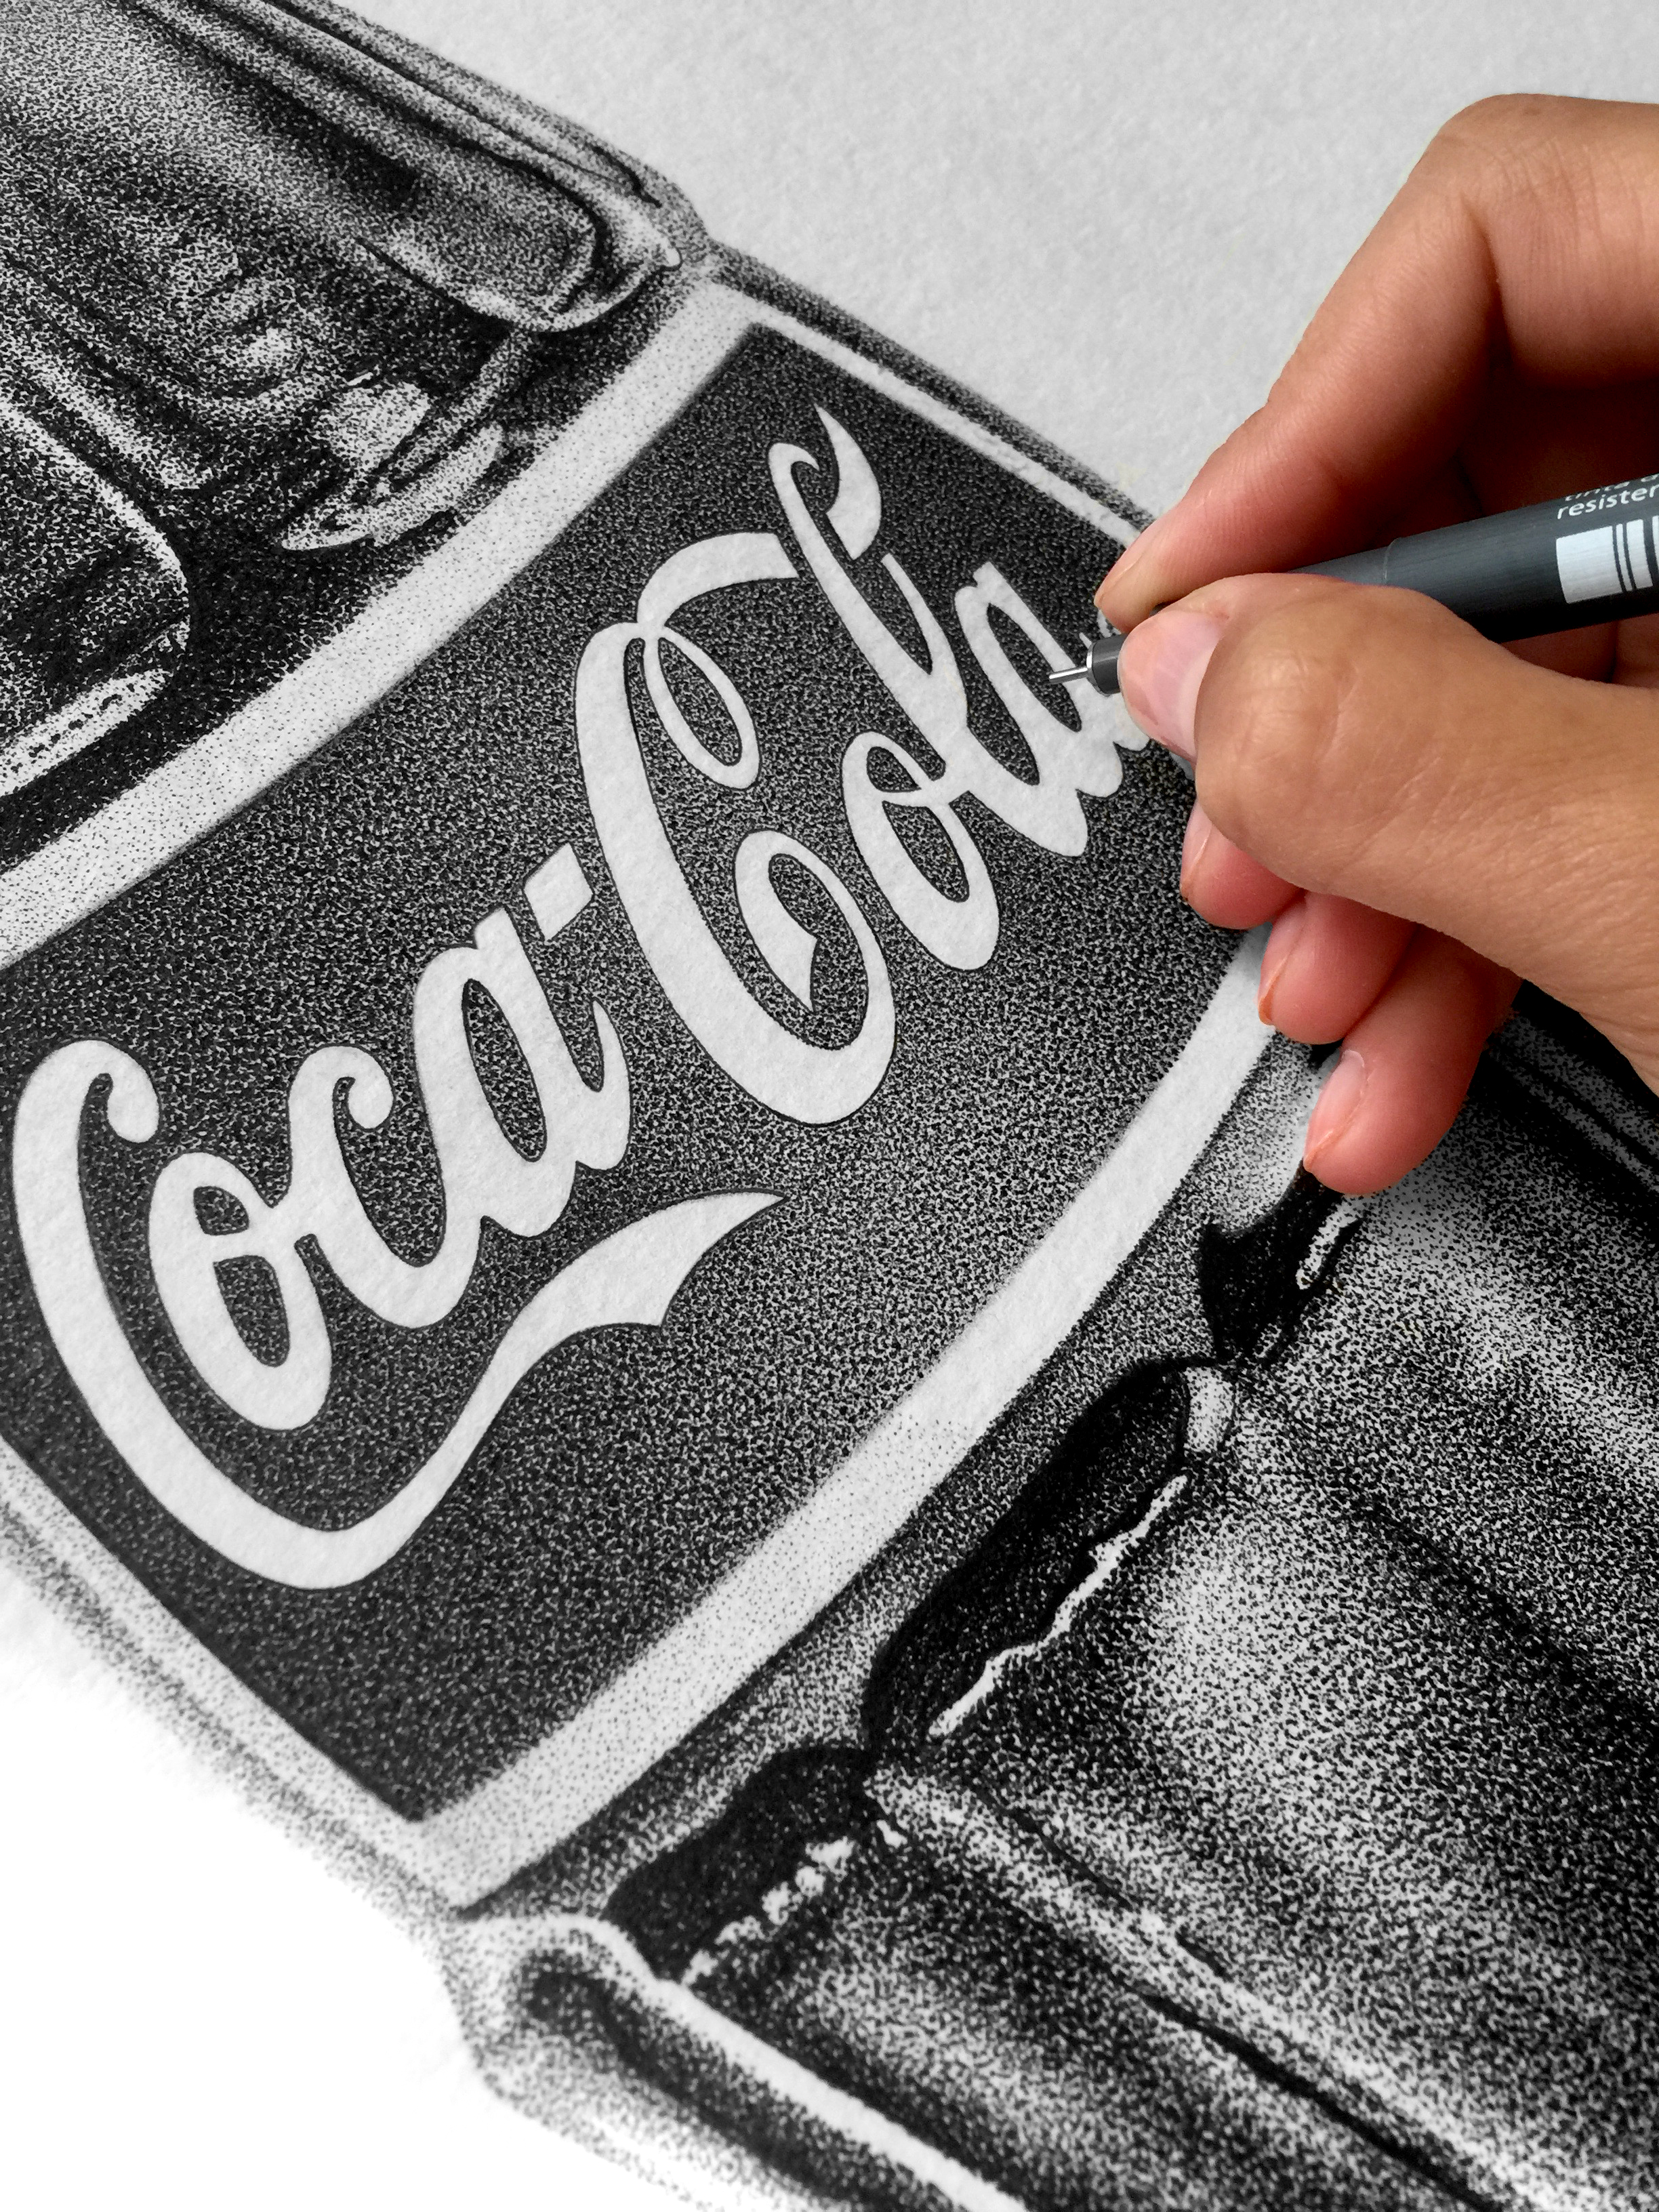 """Lets Have a Coke"", Yelena York, pointillism - pen and Ink on paper, 2015, 35x56cm"